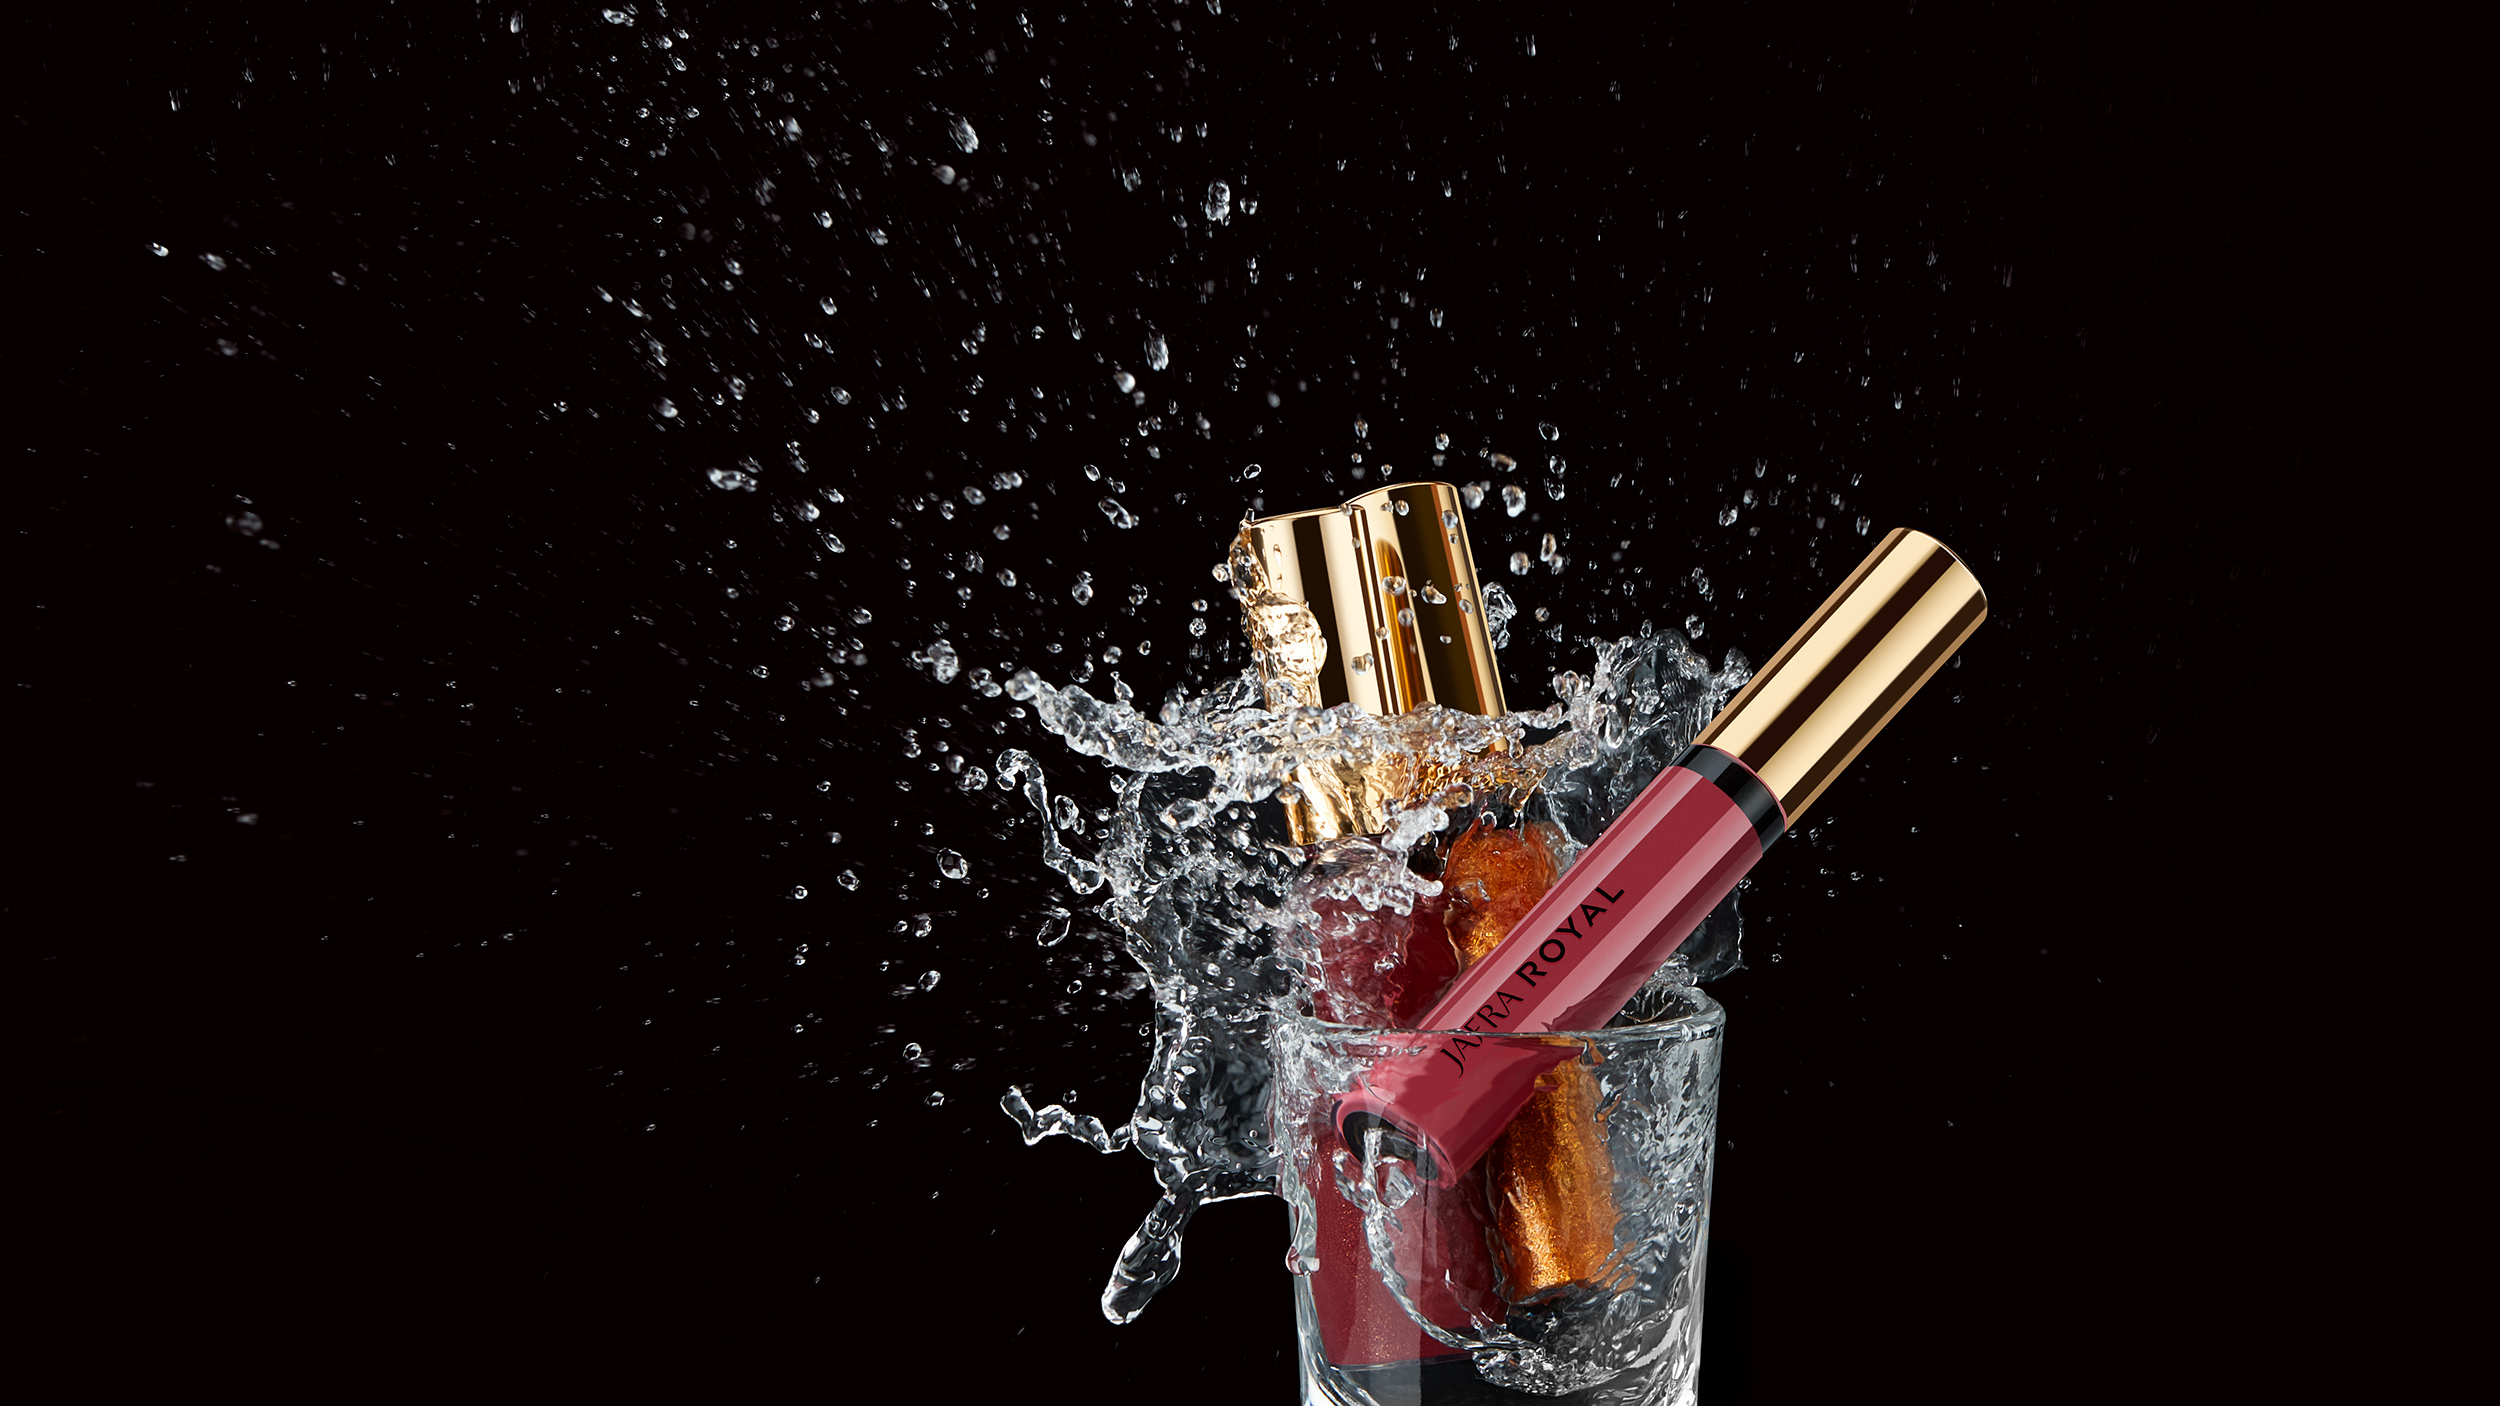 RoyalColor_PrettyLipGloss_Splash_hero_Group_074_web